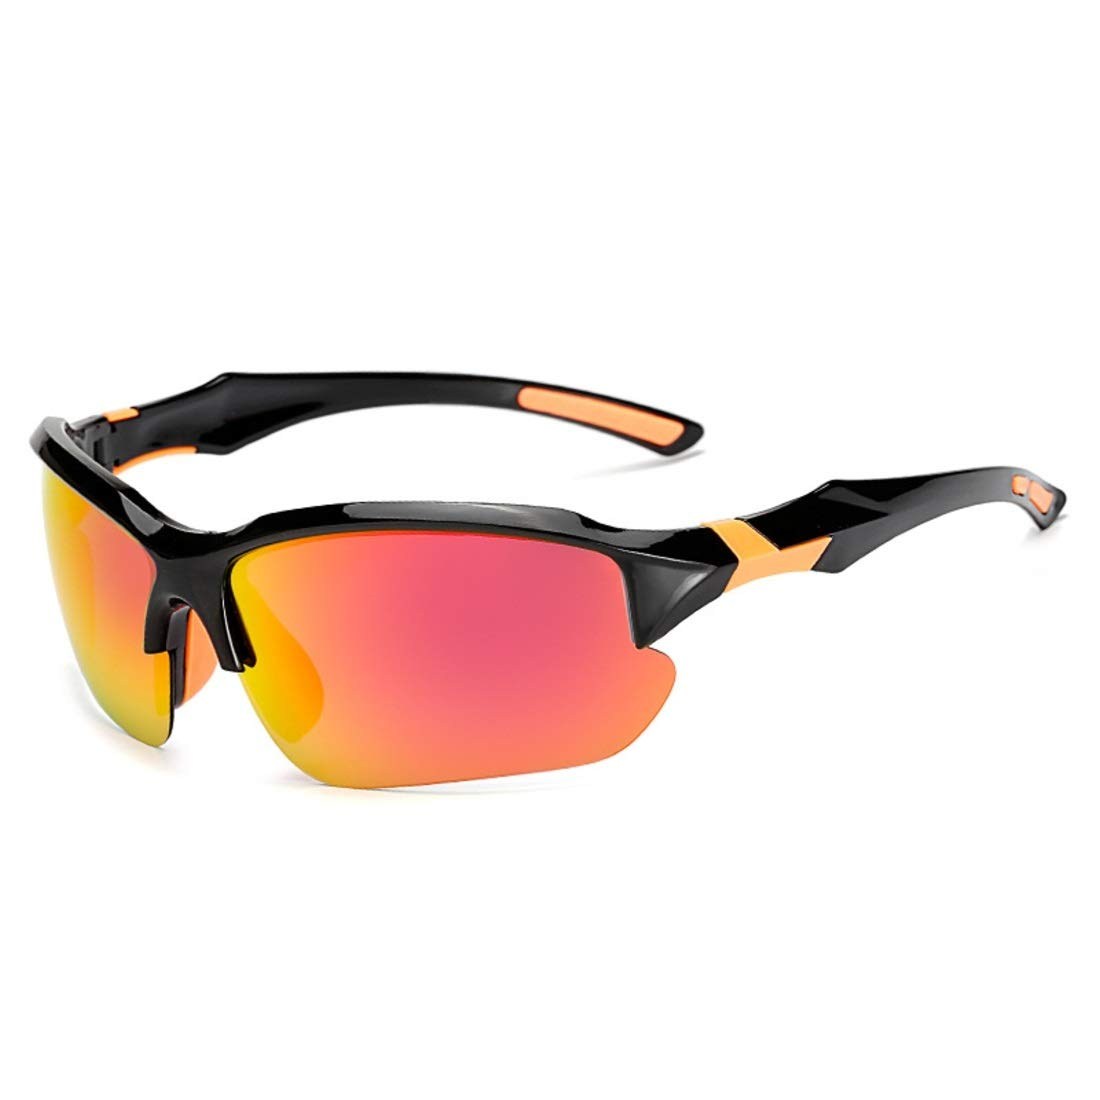 BAOYIT Riding Glasses Polarized Night Vision Fishing Mountaineering Running Sports Glasses Men and Women (Color : Yellow) by BAOYIT